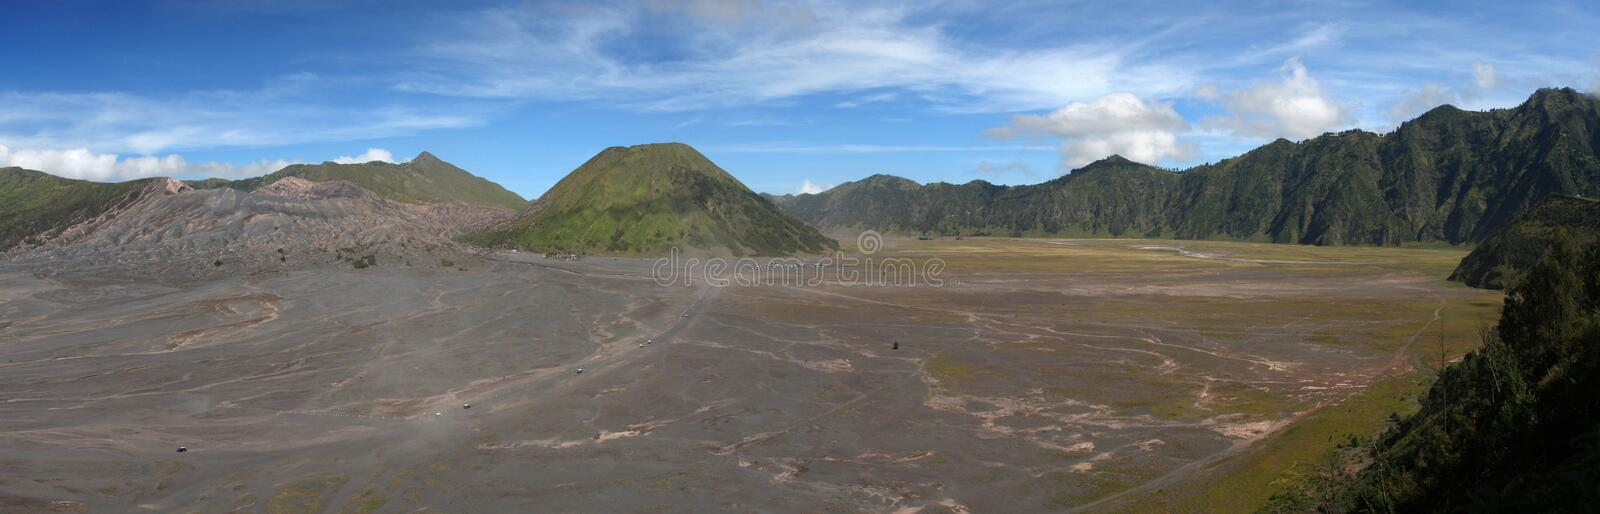 Tengger caldera. Volcanic landscape of National park Bromo Tengger Semeru in east Java. View at ancient Tengger caldera within which four new craters were stock image